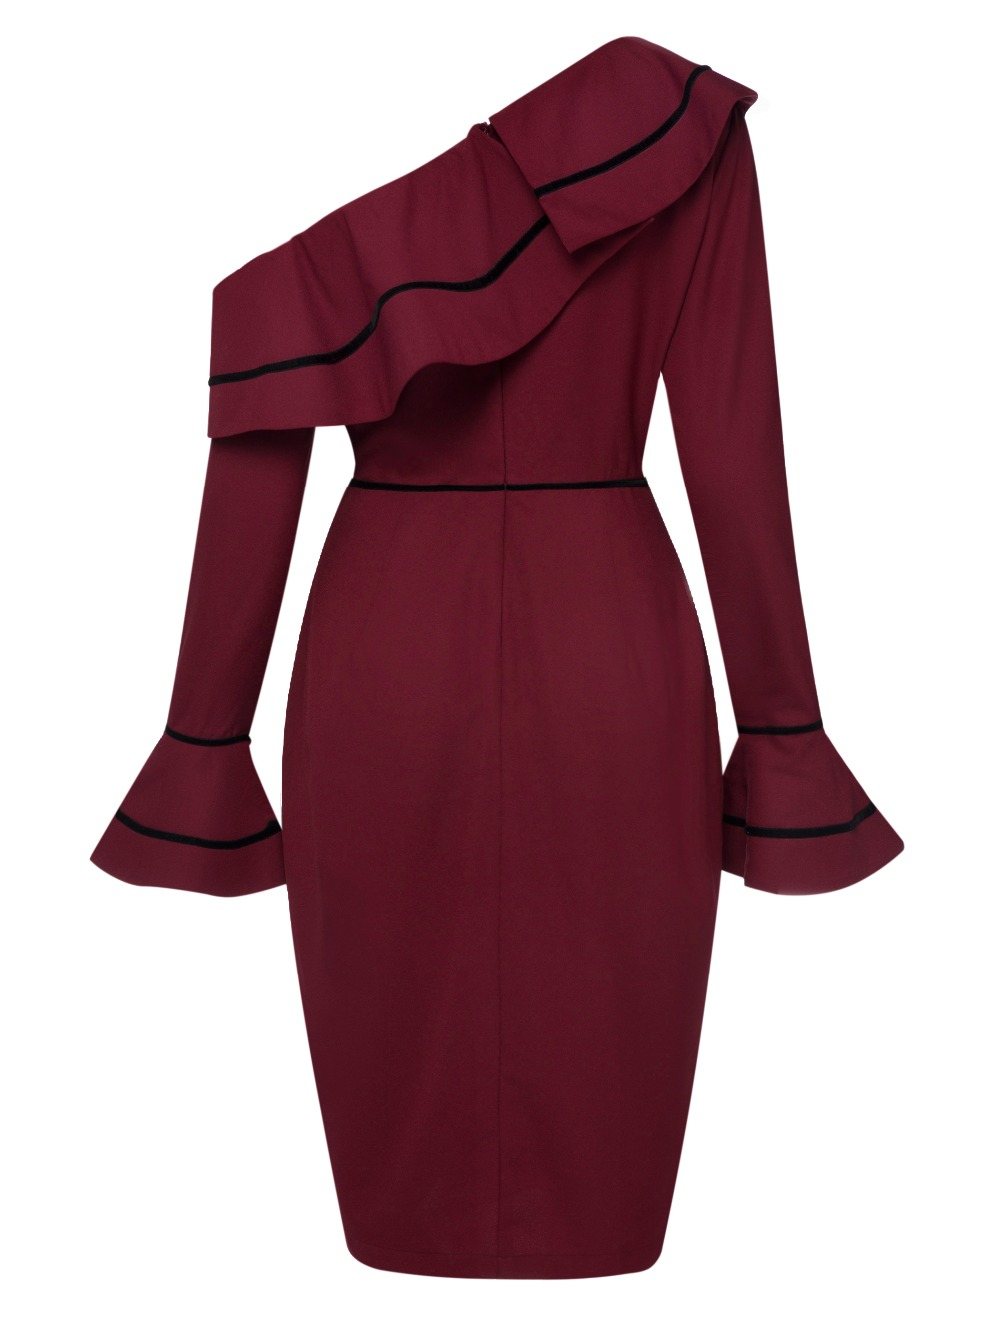 9ff178f881 Wine Red Asymmetric One Shoulder Autumn Pencil Dress Flare Long ...